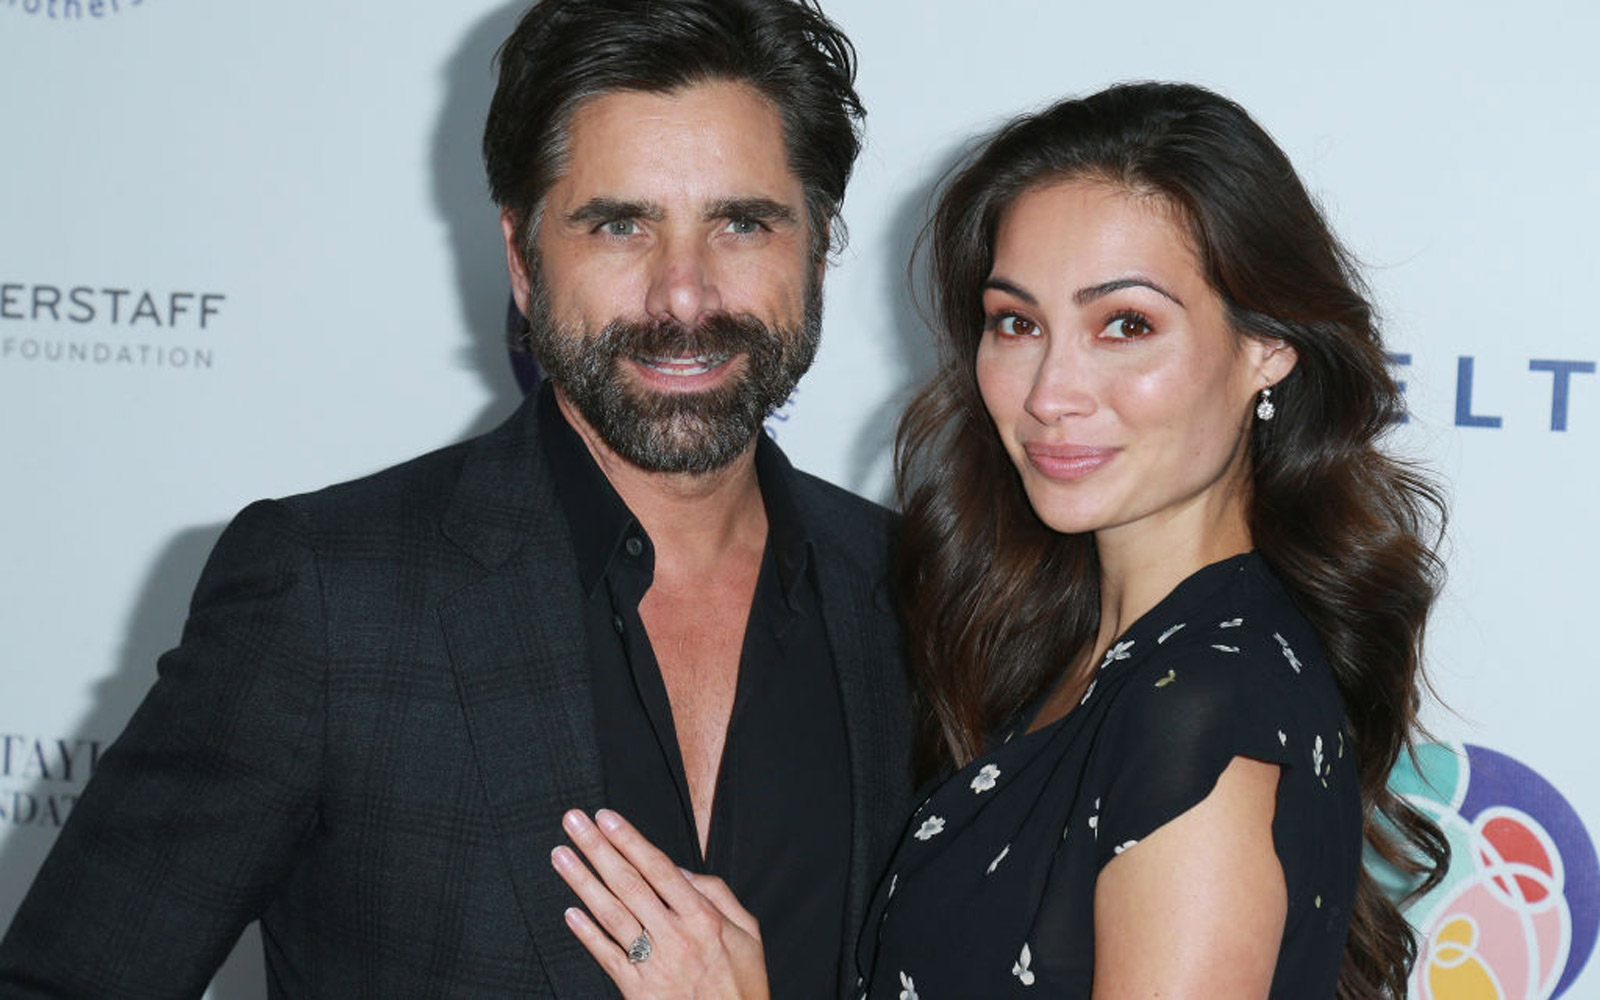 John Stamos Is Finally Going to Be a Dad: 'I've Been Practicing for a Long Time'